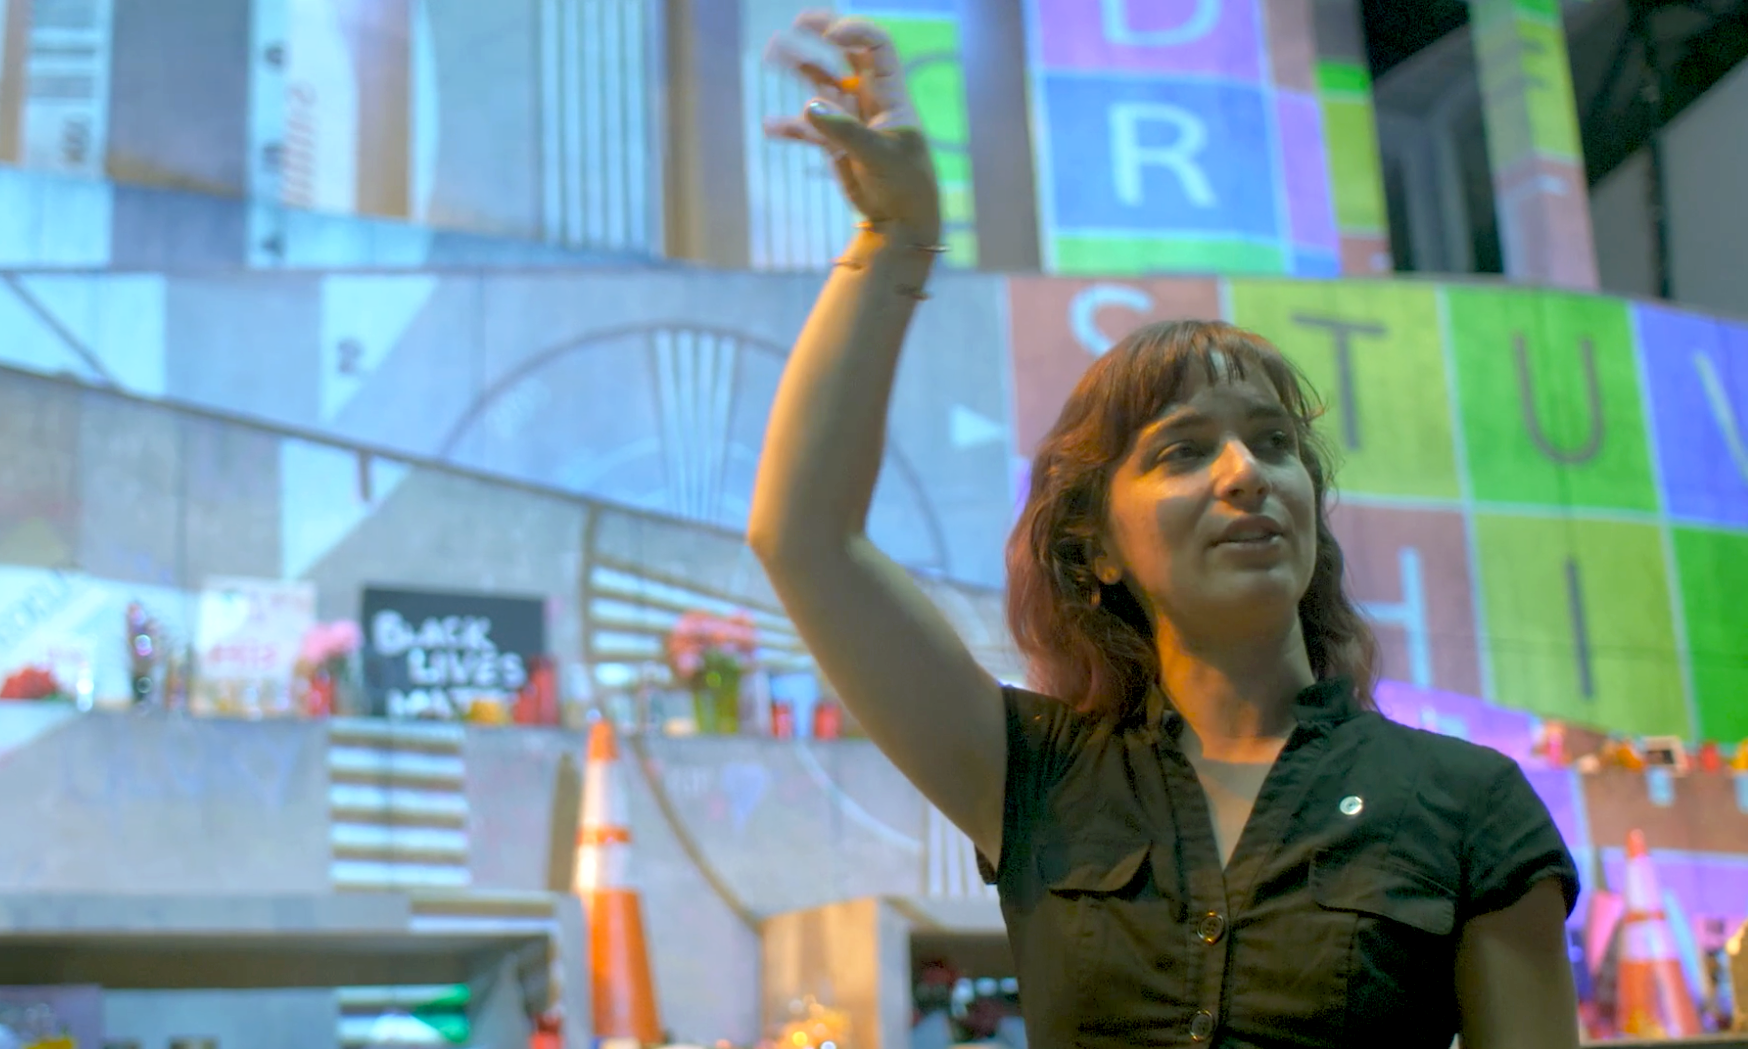 Katherine Freer, a white woman with long brown hair wearing a black dress, gestures at the slightly out of focus stage for a production of Antigone, where the architecture is illuminated by the projections of a colorful focus grid.